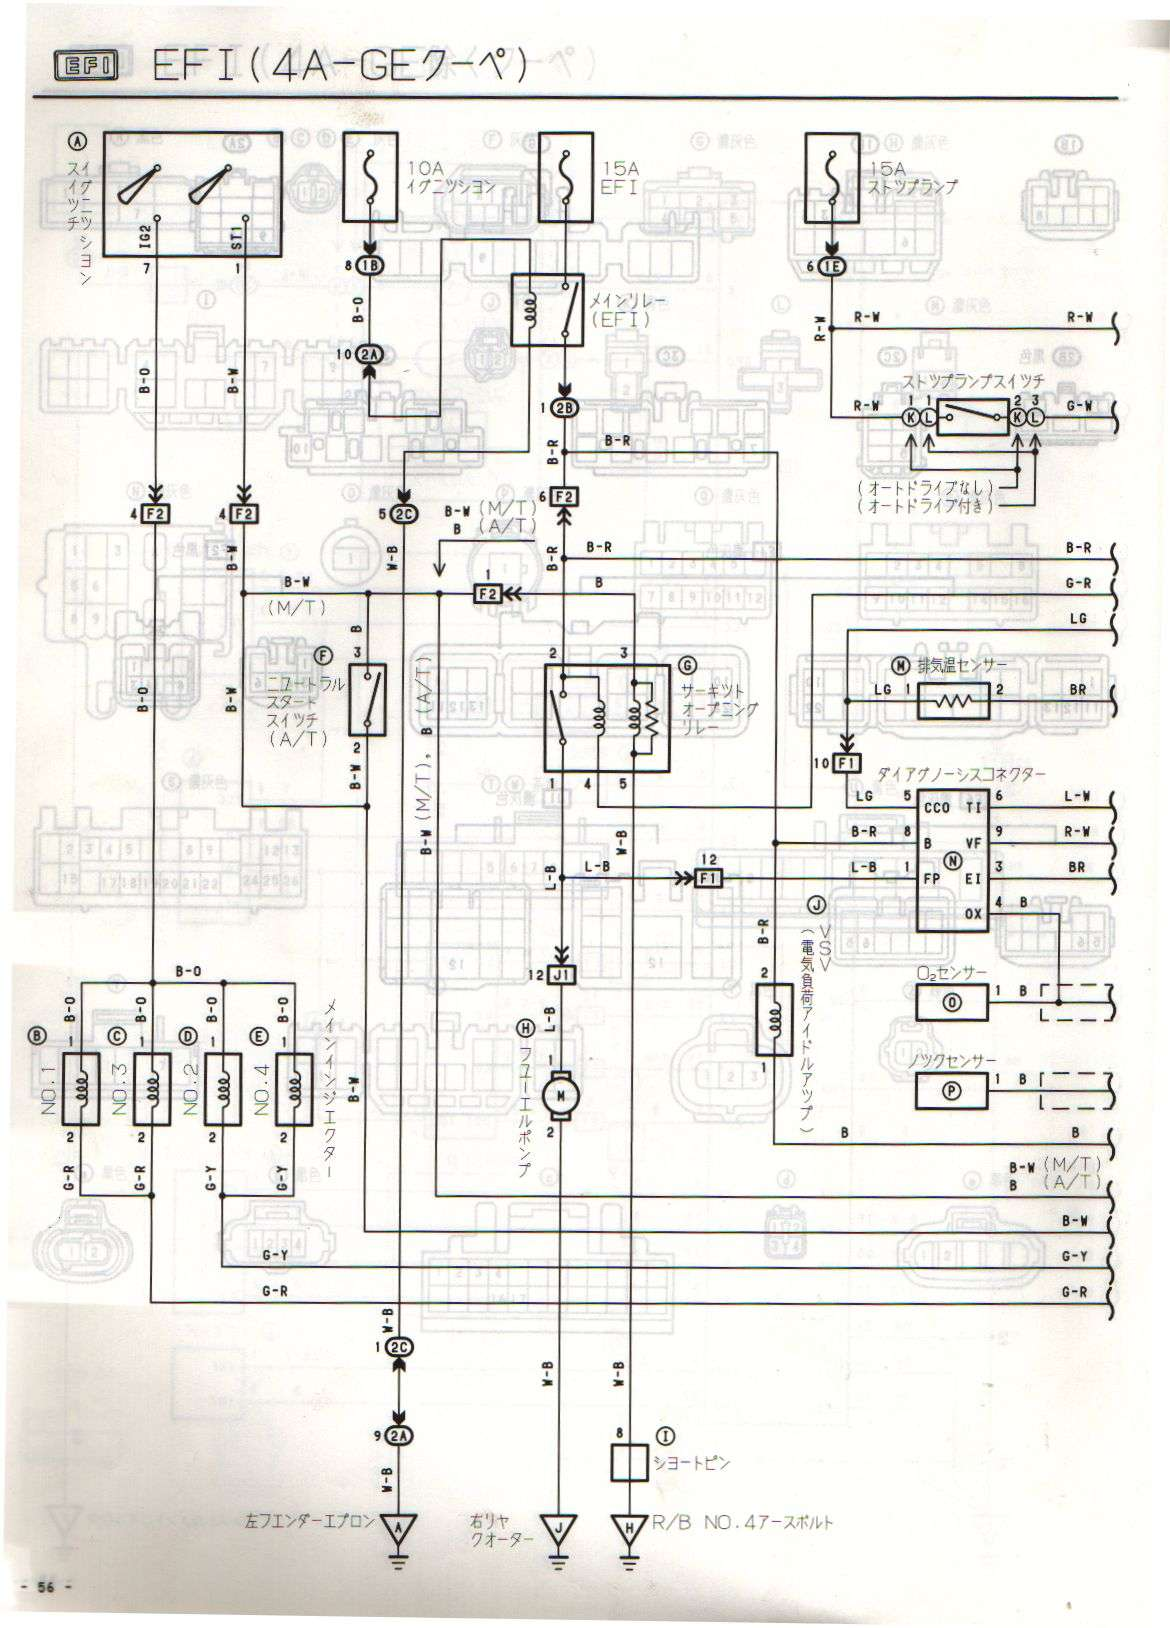 jdm ae86 wiring diagram 2002 toyota sequoia parts ooh latest corolla info n pic keretalama